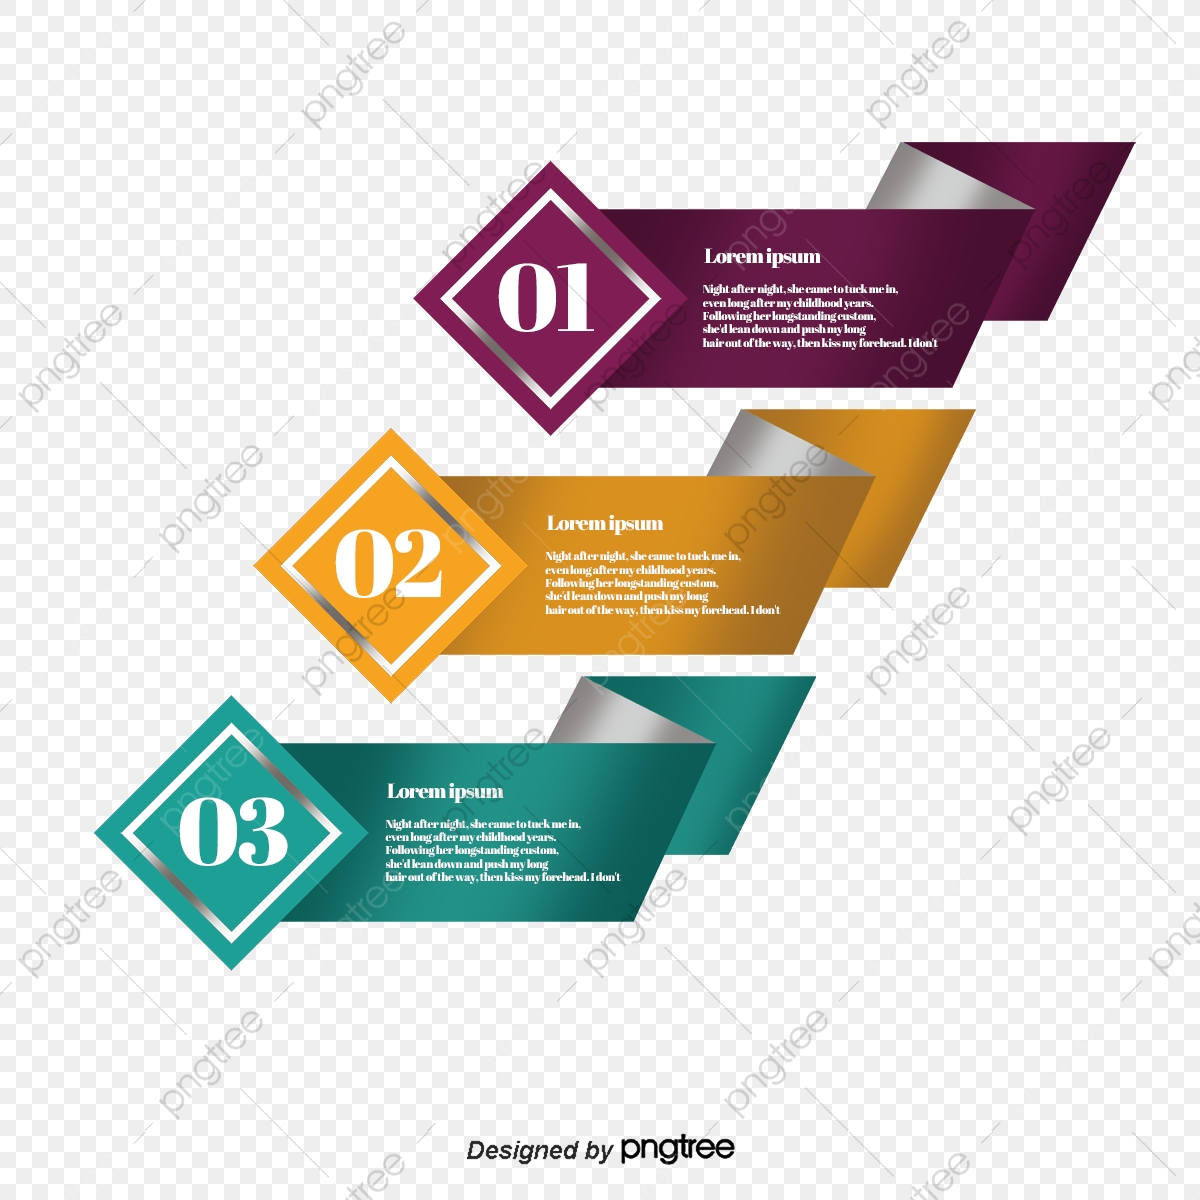 Vector Infographic, Infographic, Ppt Material, Table Of